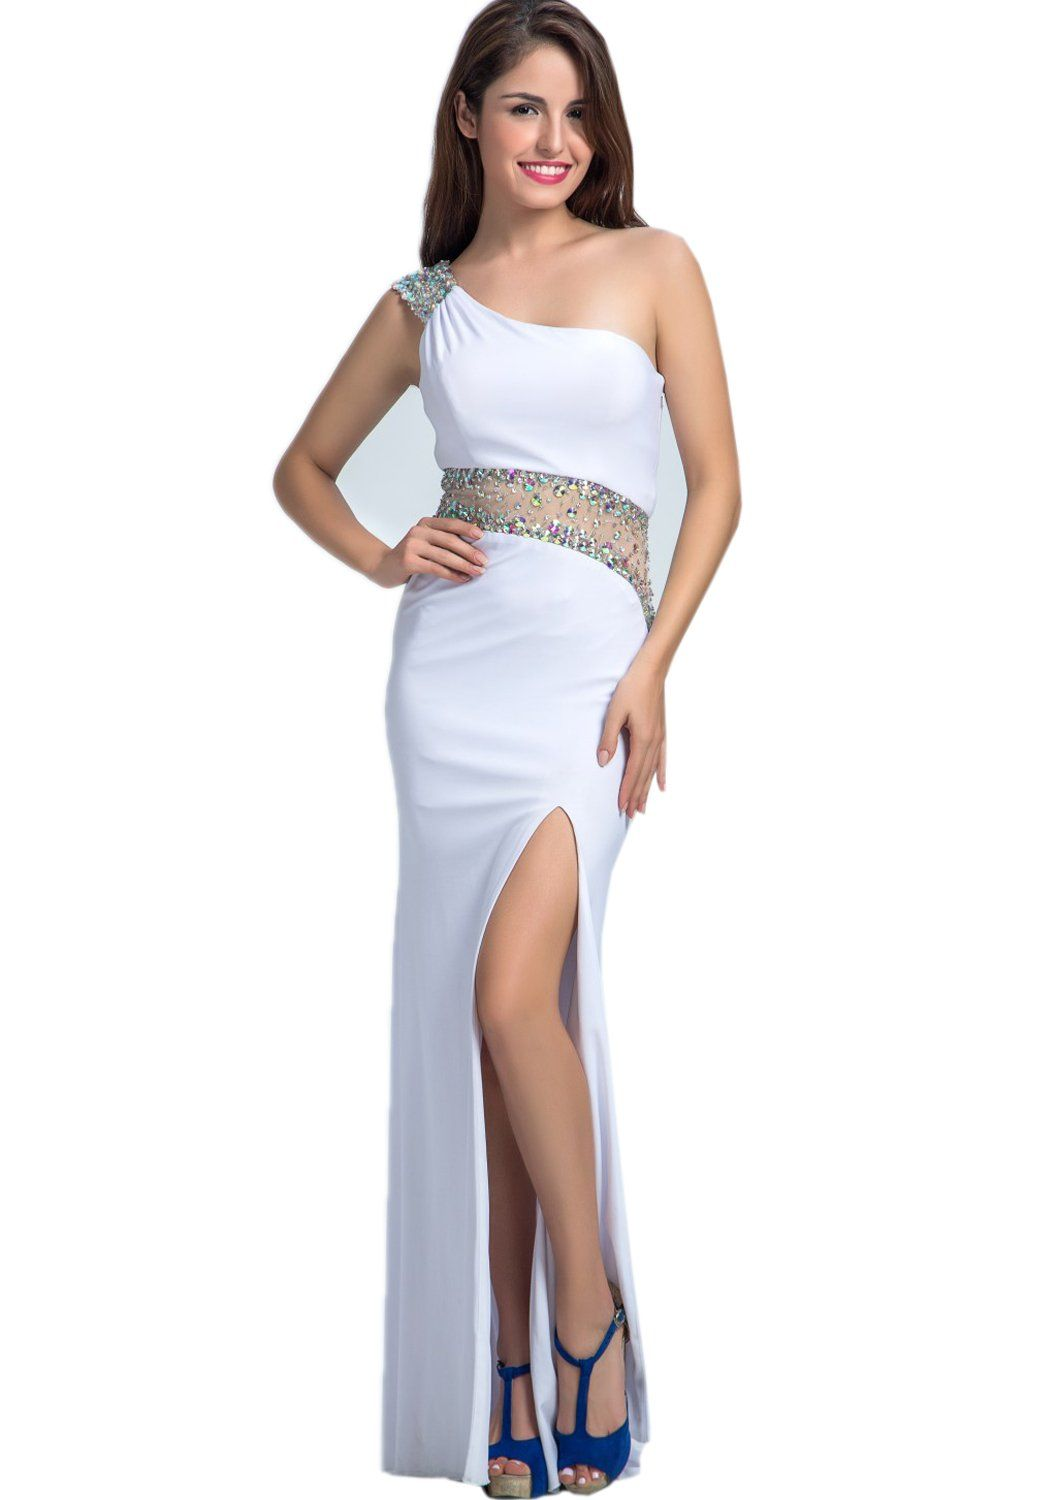 Belle house long sexy prom dress for women one shoulder celebrity